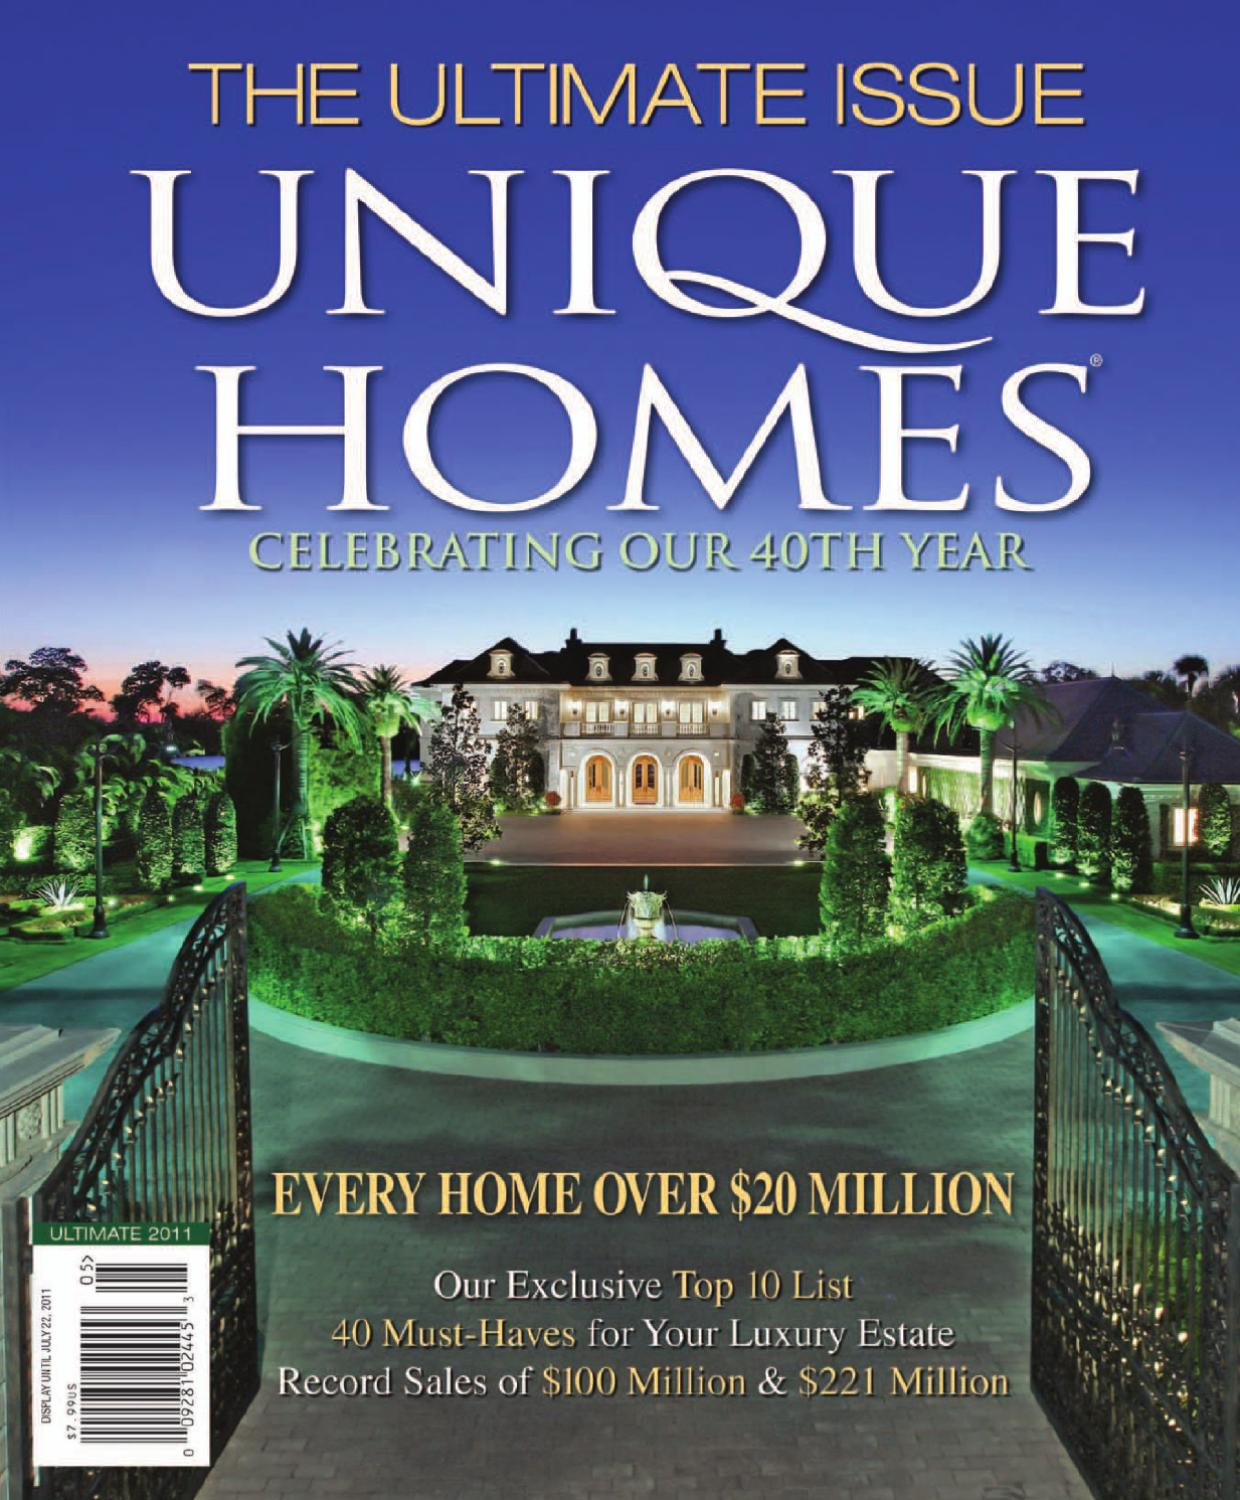 Unique homes ultimate issue 2011 by network communications inc issuu sciox Image collections